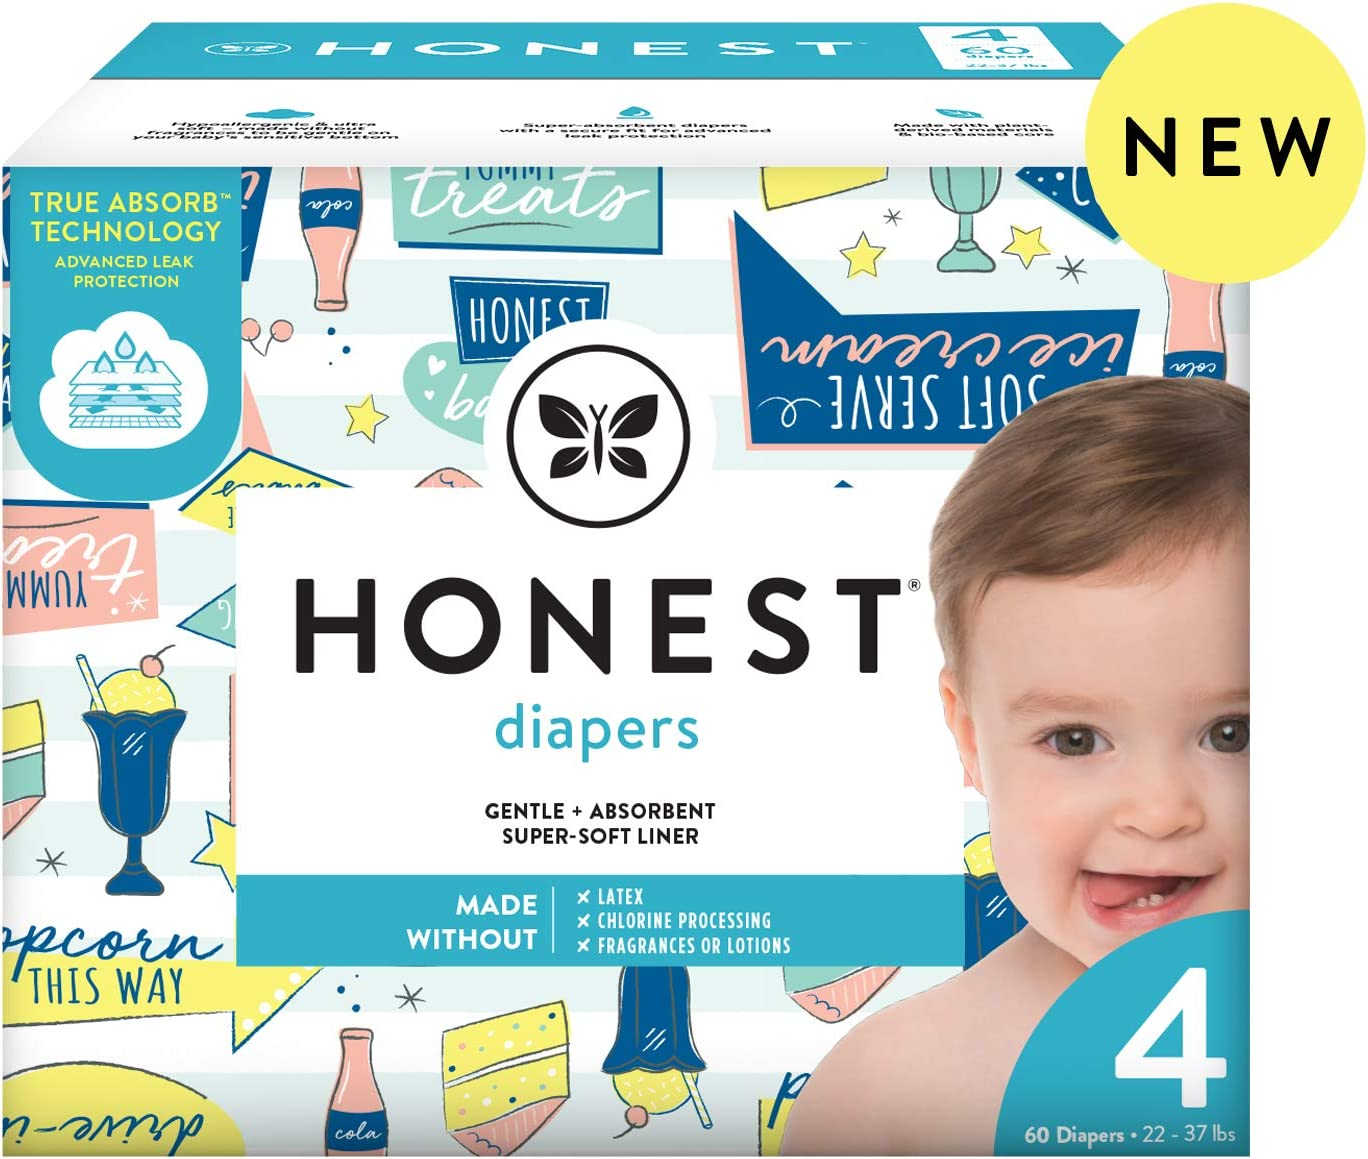 The Honest Company The Honest Company Baby Diapers with True Absorb Technology, Drive-in, Size 4, 60 Count, 60 Count